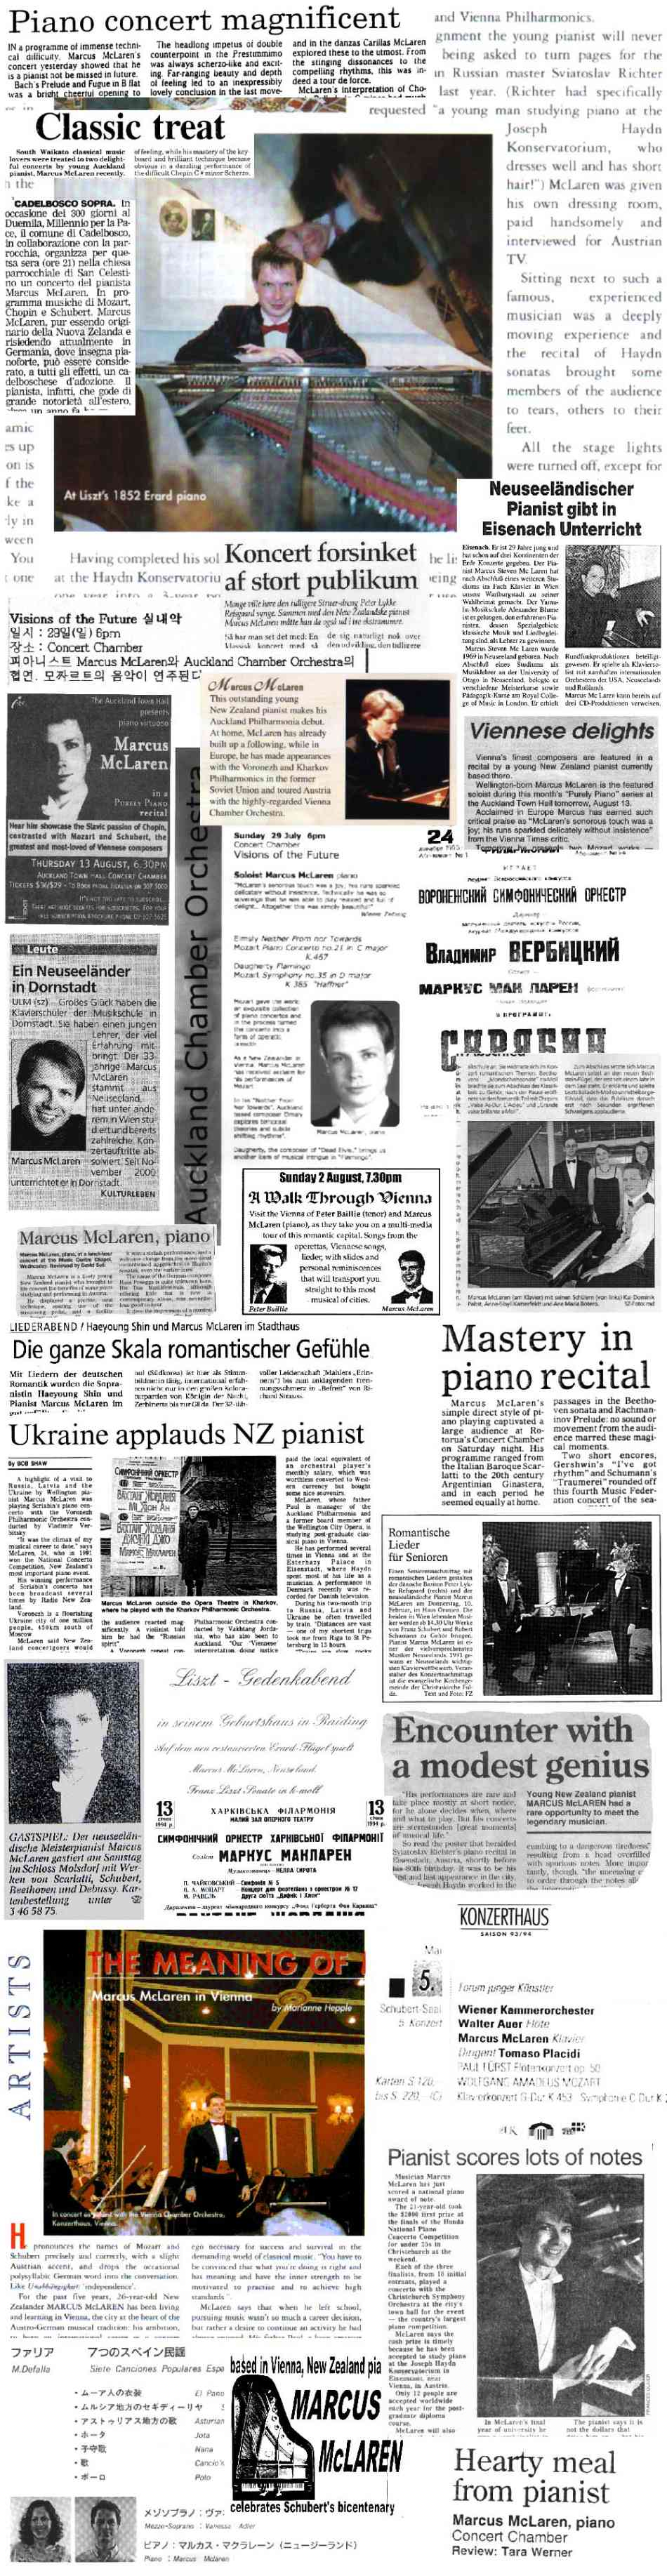 Press articles on Marcus McLaren